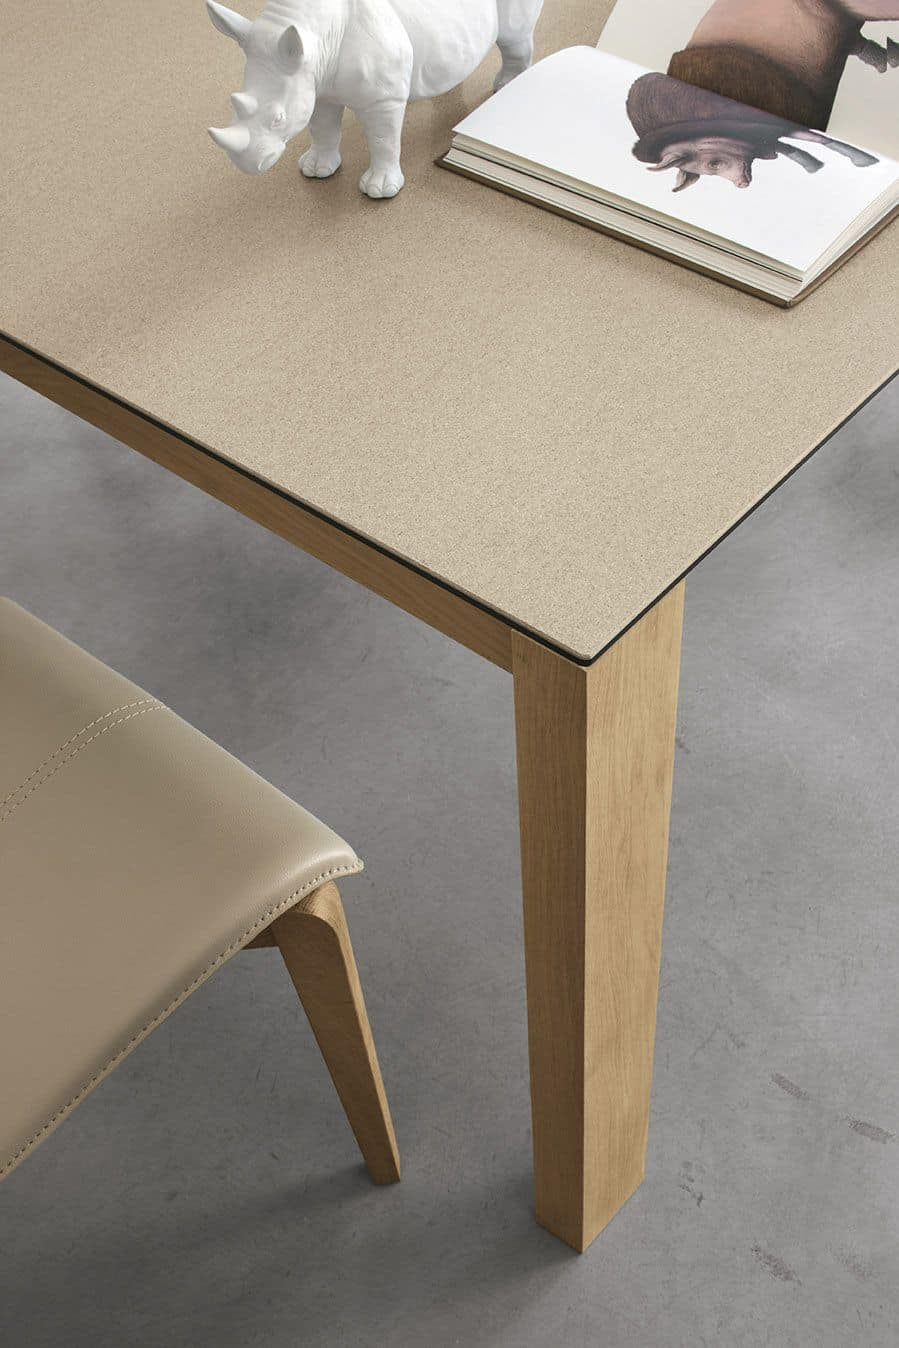 SOLE 140 WOOD TA180, Table with solid wood legs, with extendable top, for home funrishing